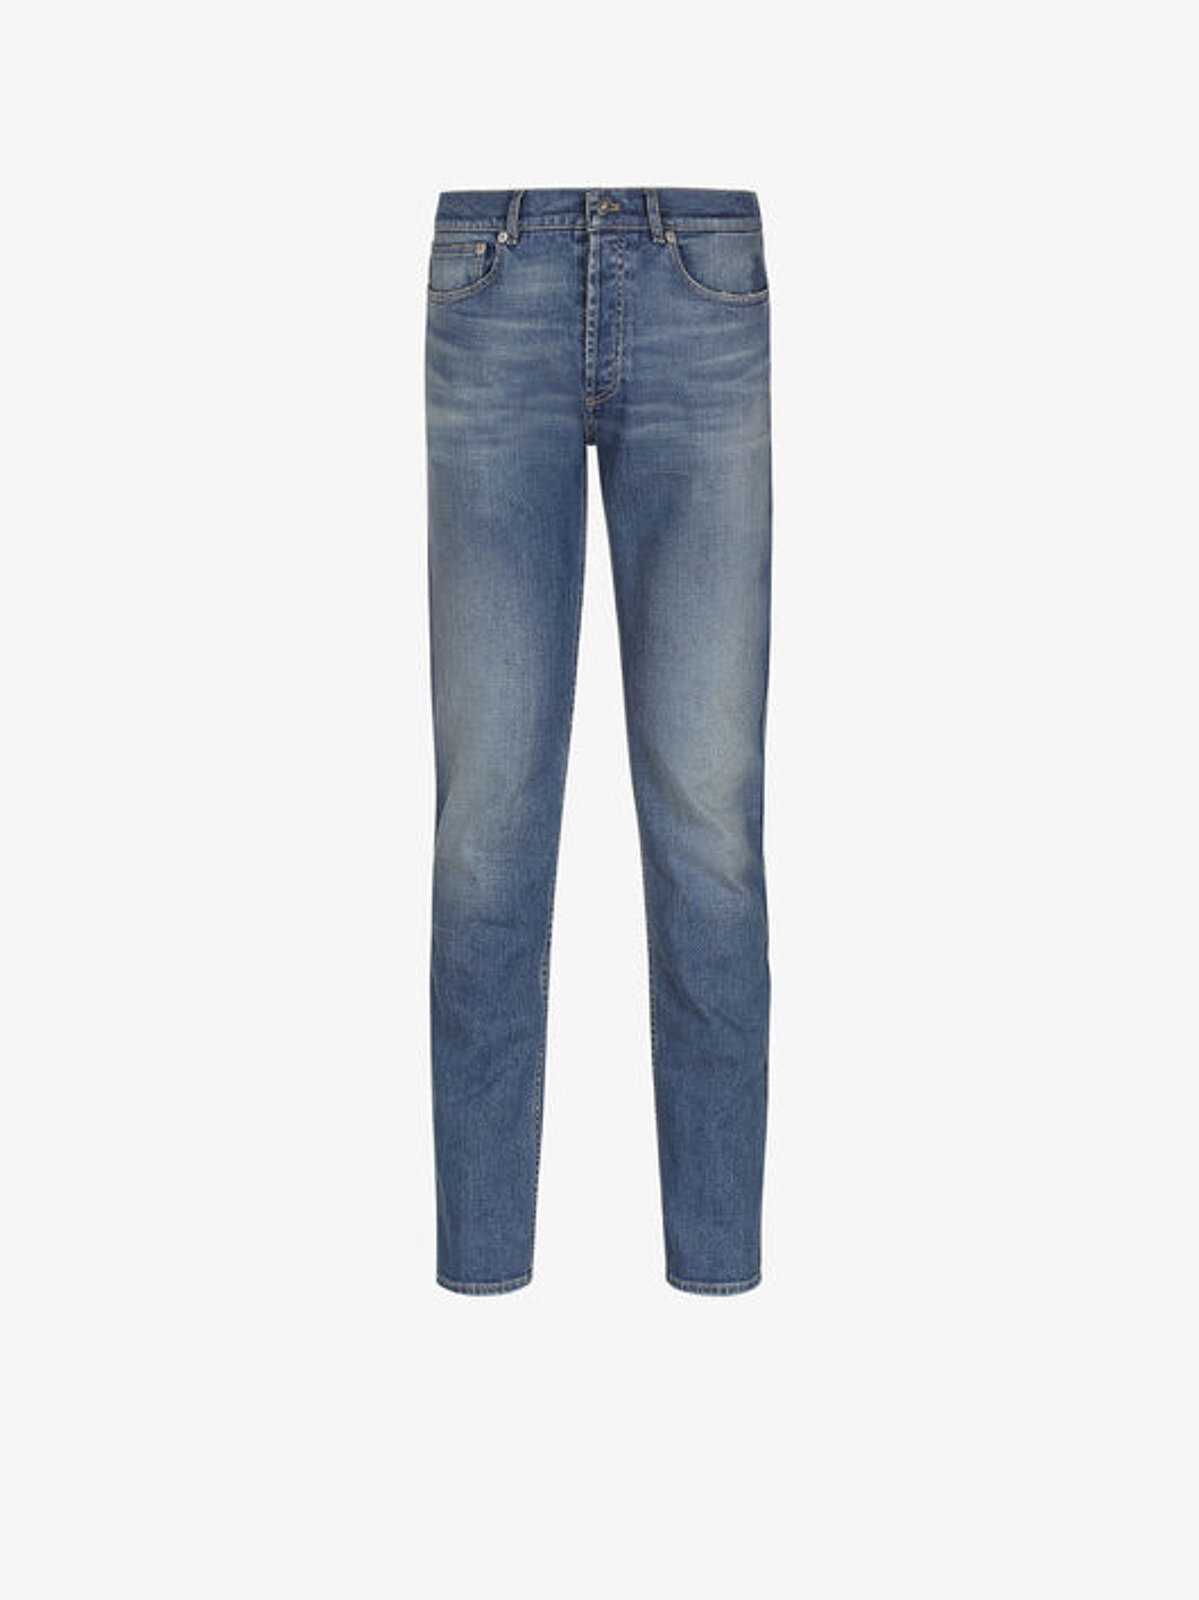 Jeans Slim Fit Con Timbro Givenchy Paris - Givenchy